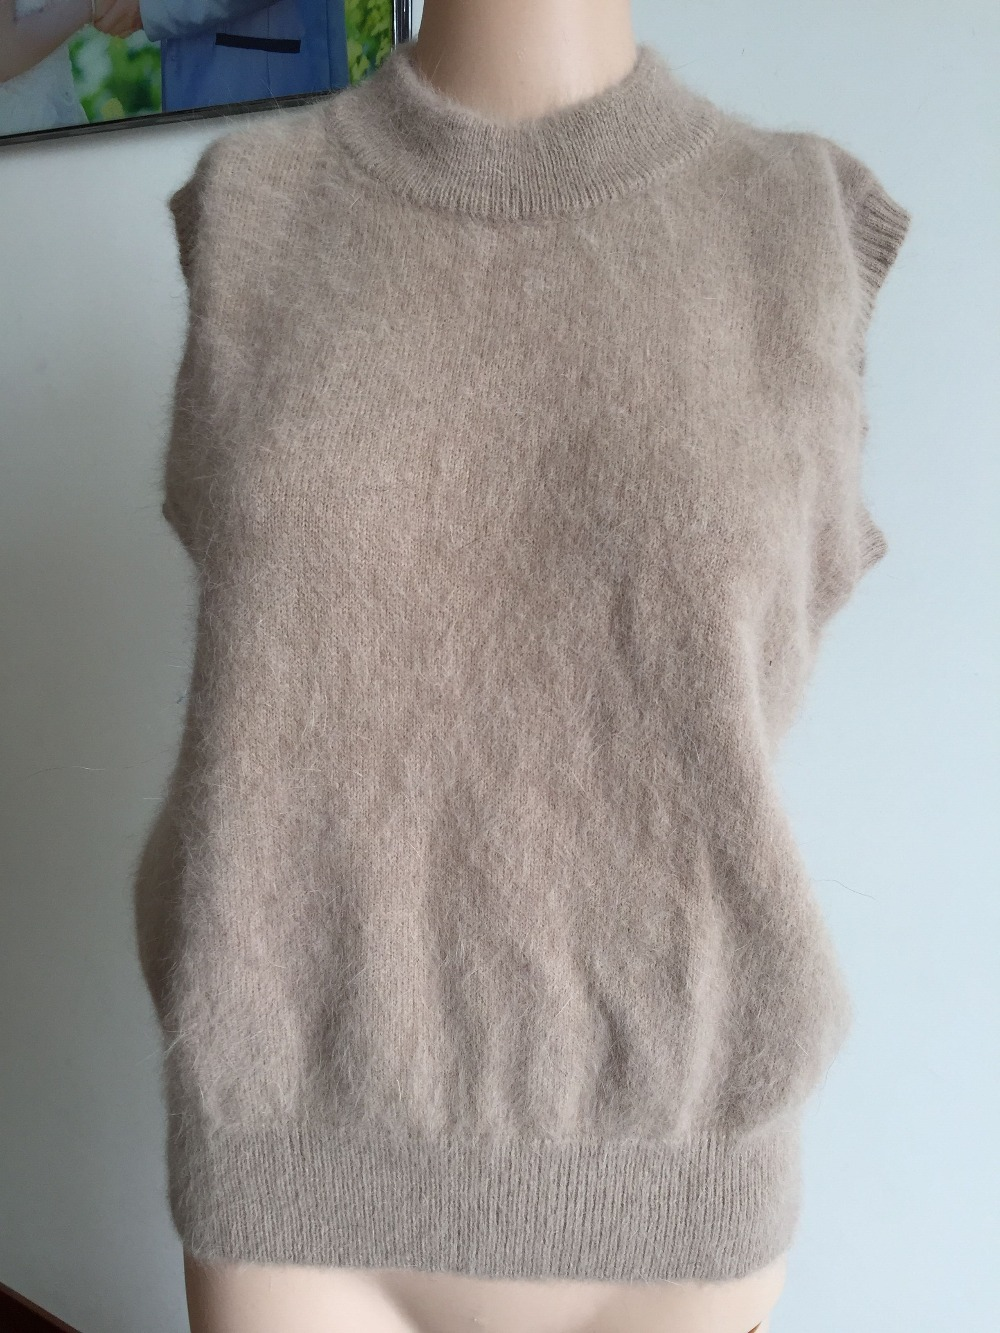 5a3ee6f9a7 Very Very Low Price- Inventory clearance sale - 100% Mink Cashmere ...